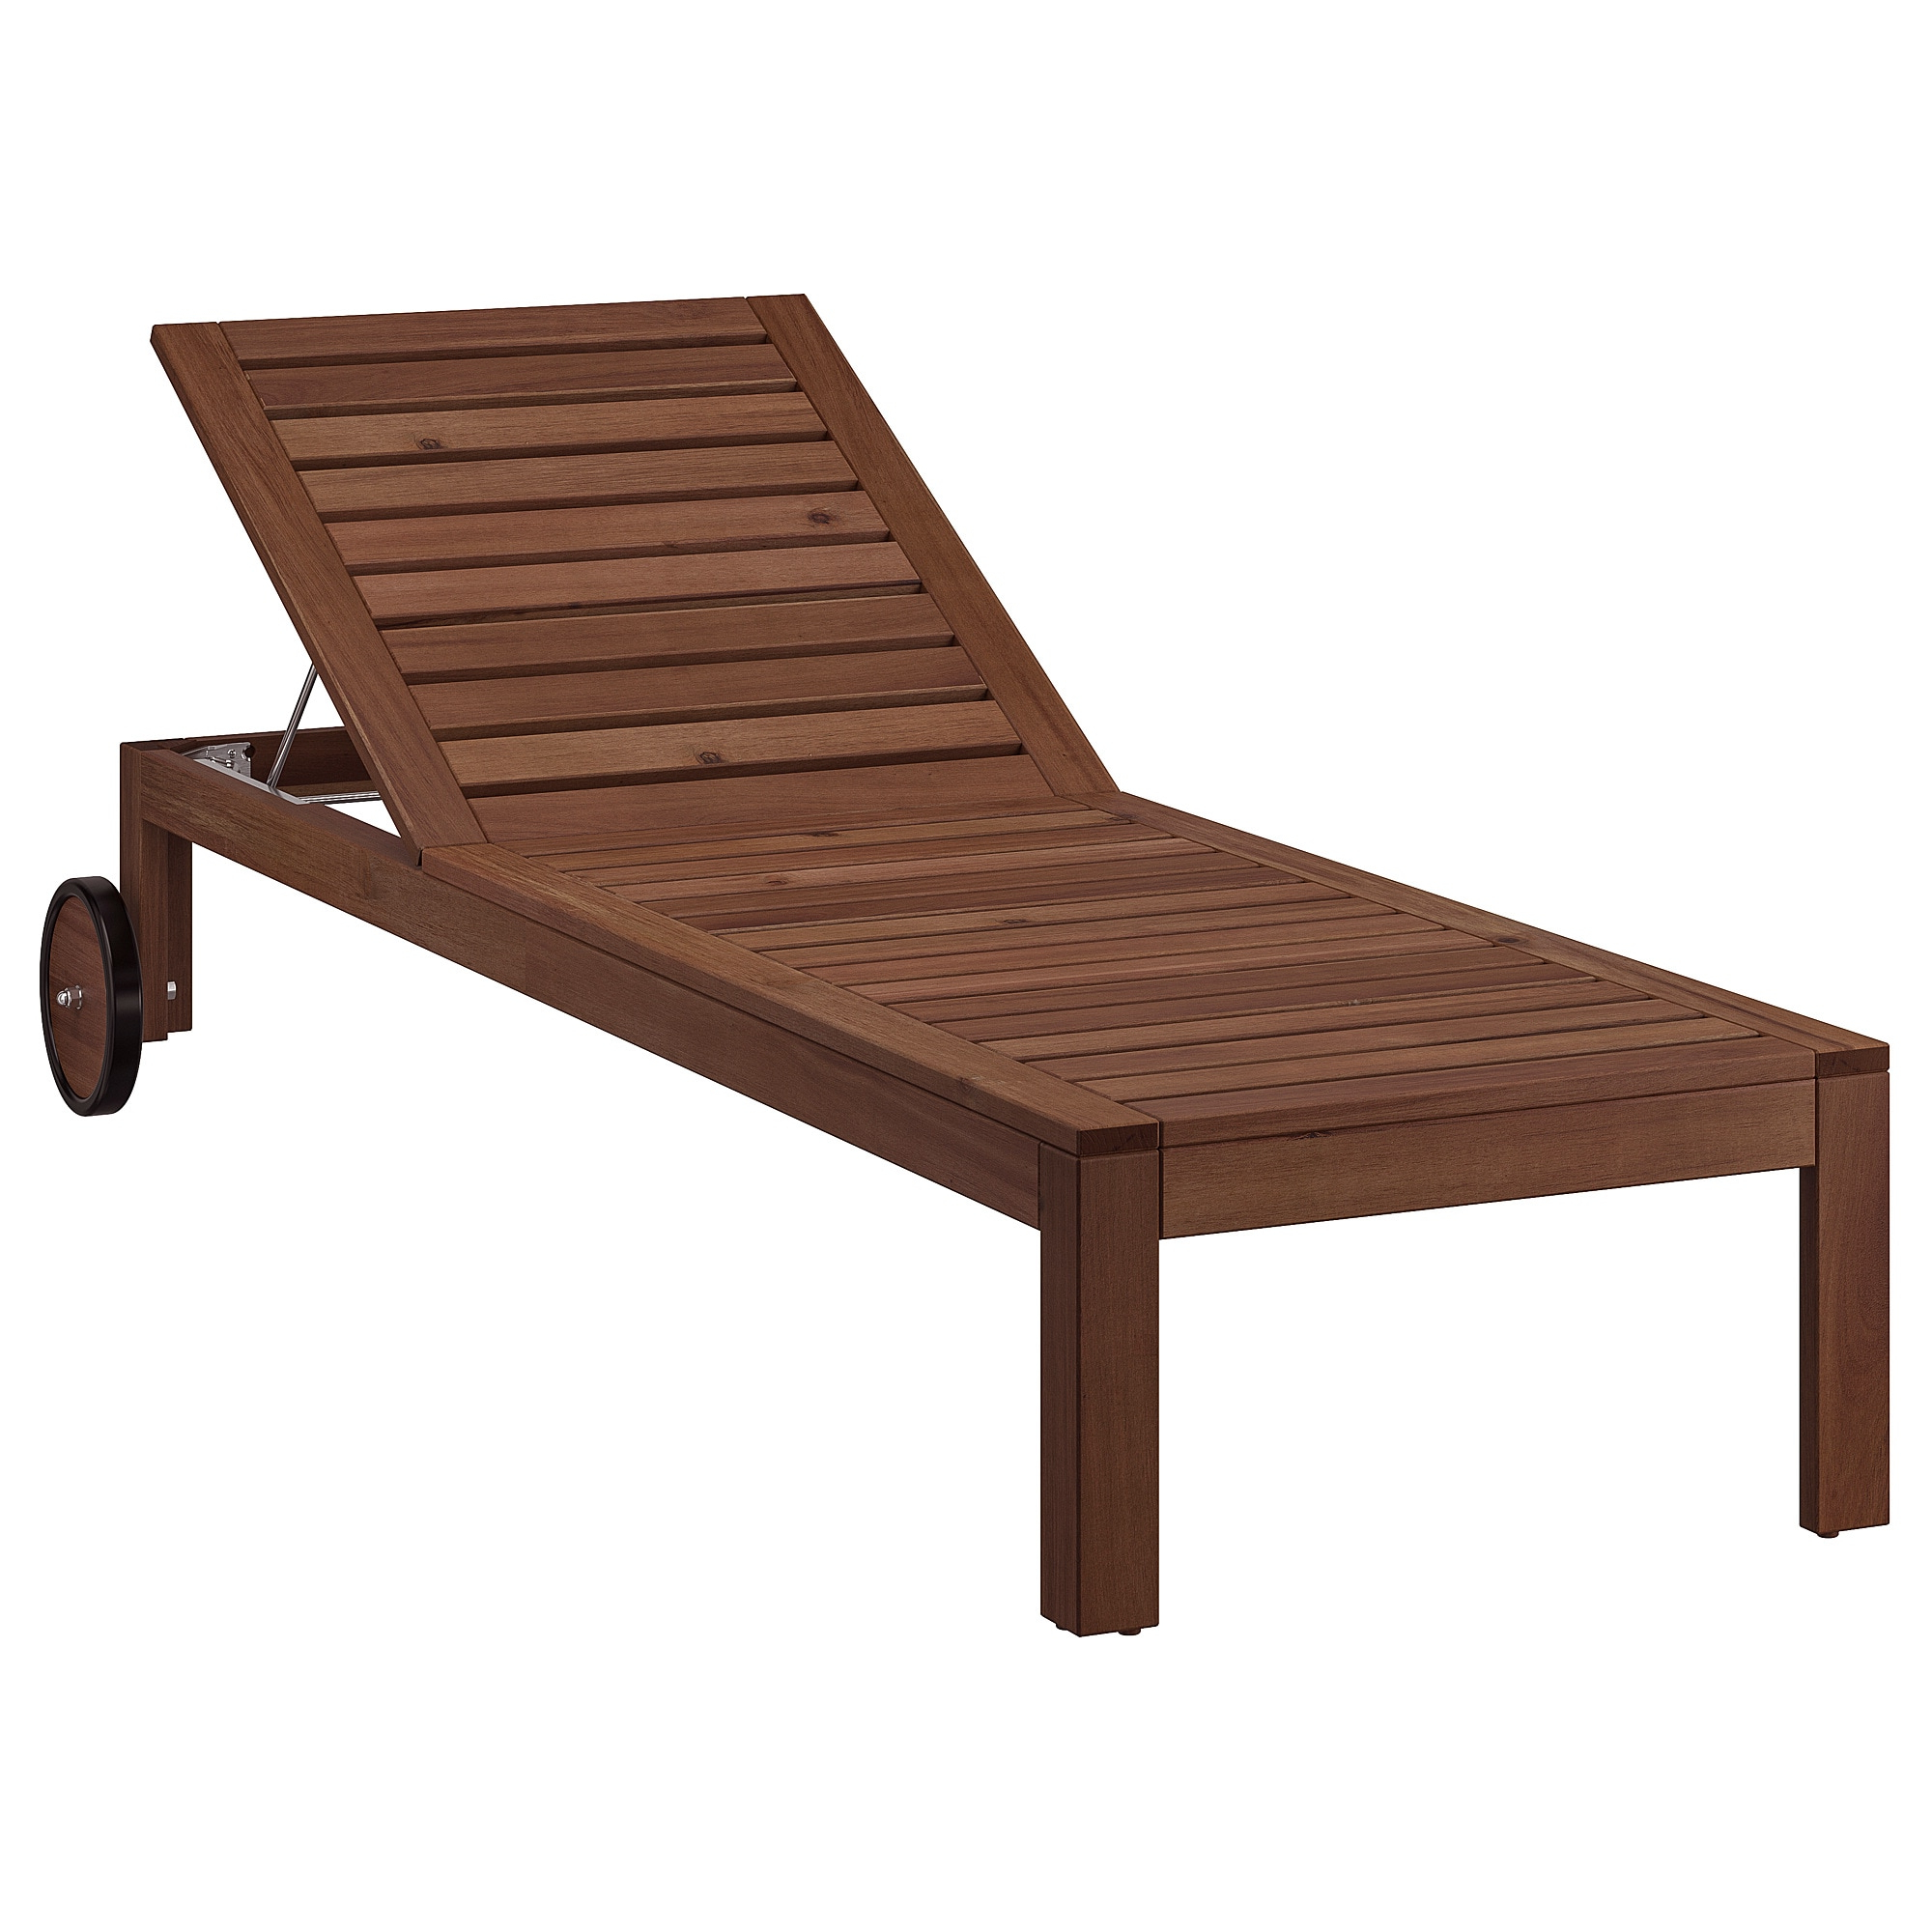 2019 Outdoor Cart Wheel Adjustable Chaise Lounge Chairs In Chaise Äpplarö Brown Stained Brown (View 1 of 25)